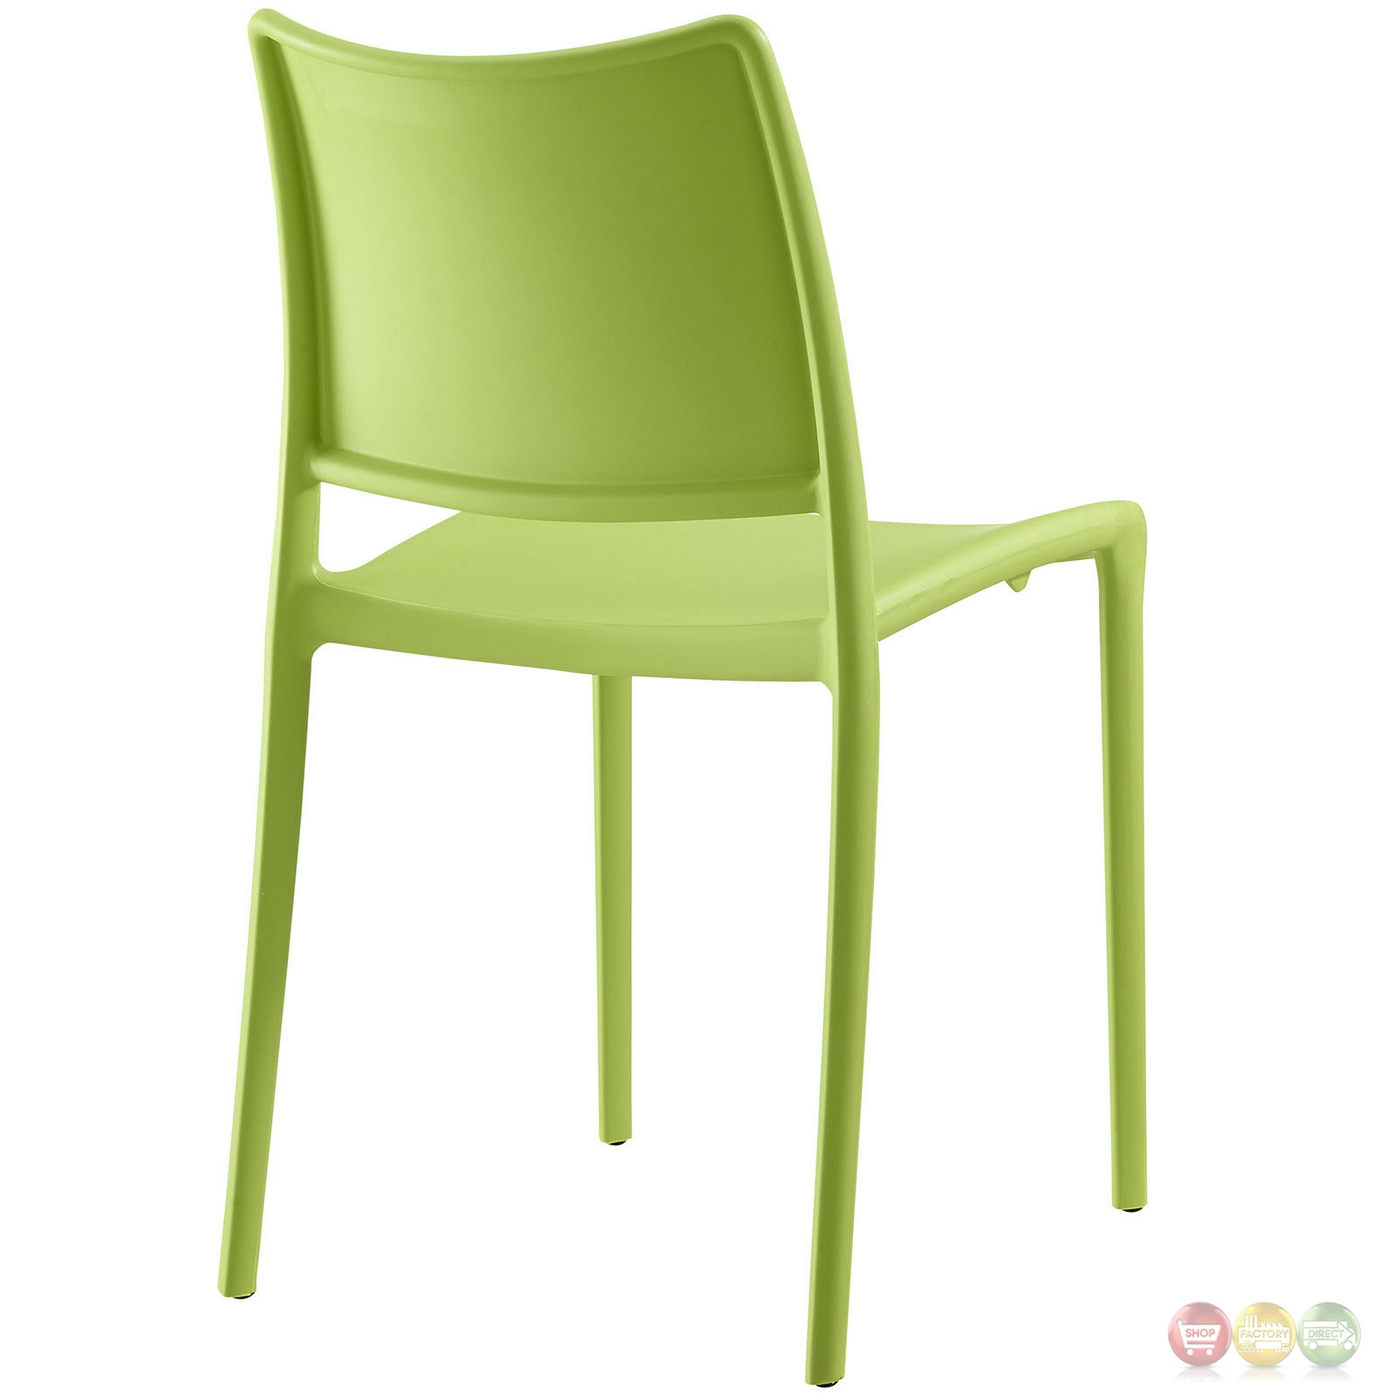 stackable resin chairs green pub style kitchen table and hipster contemporary plastic dining side chair